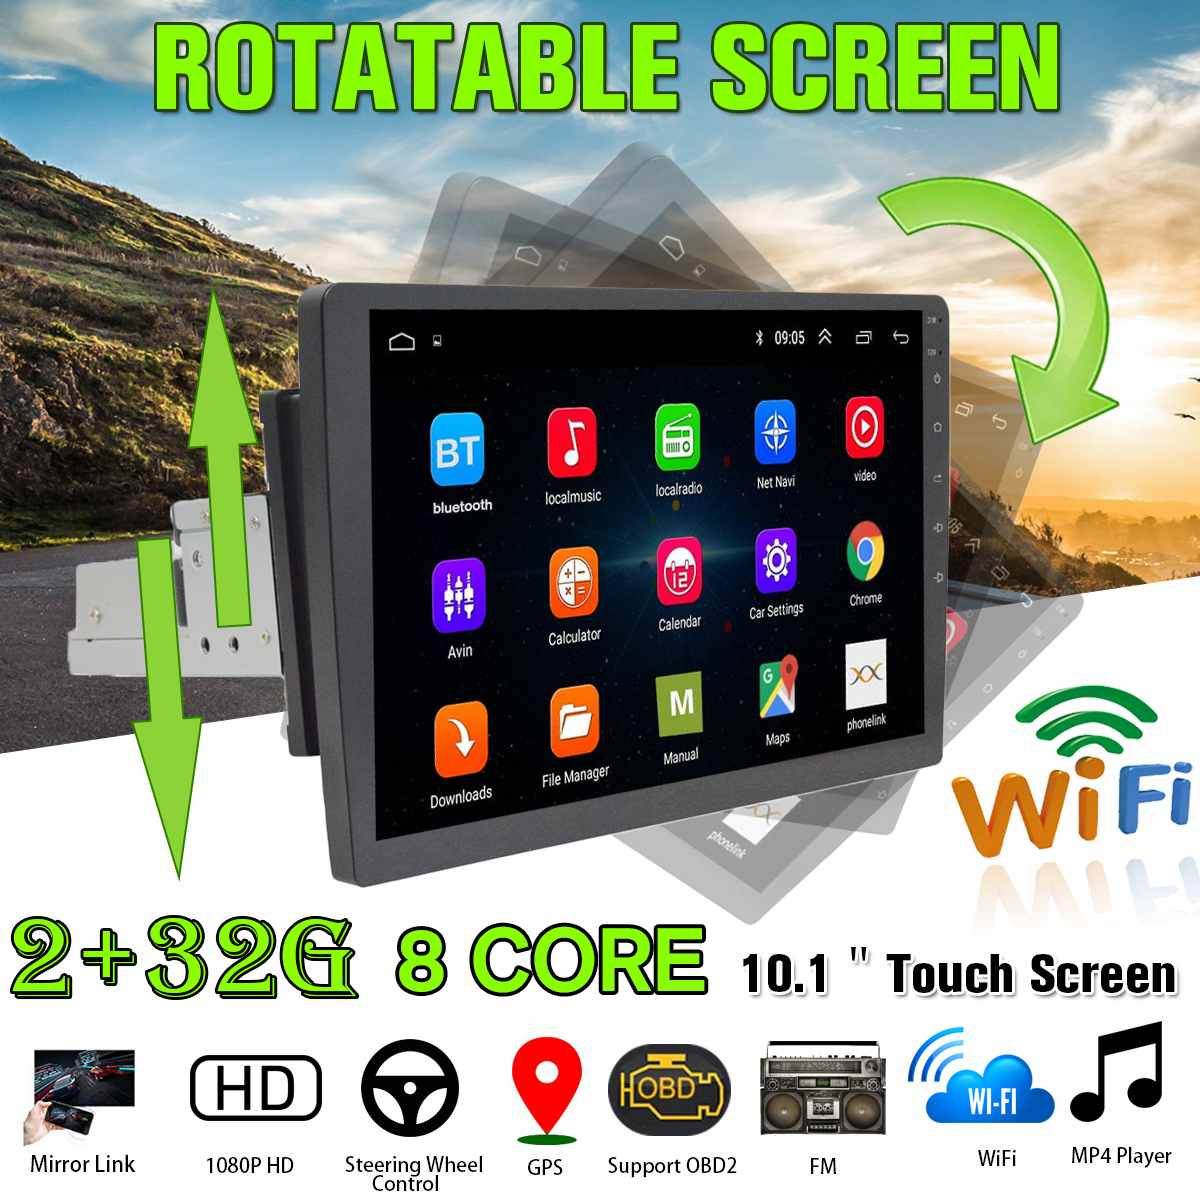 8 Core Android 8.1 Car Radio Player Multimedia 10.1inch 360 Degree Adjustable Touchscreen Player Nav GPS WiFi Car Stereo 1Din image